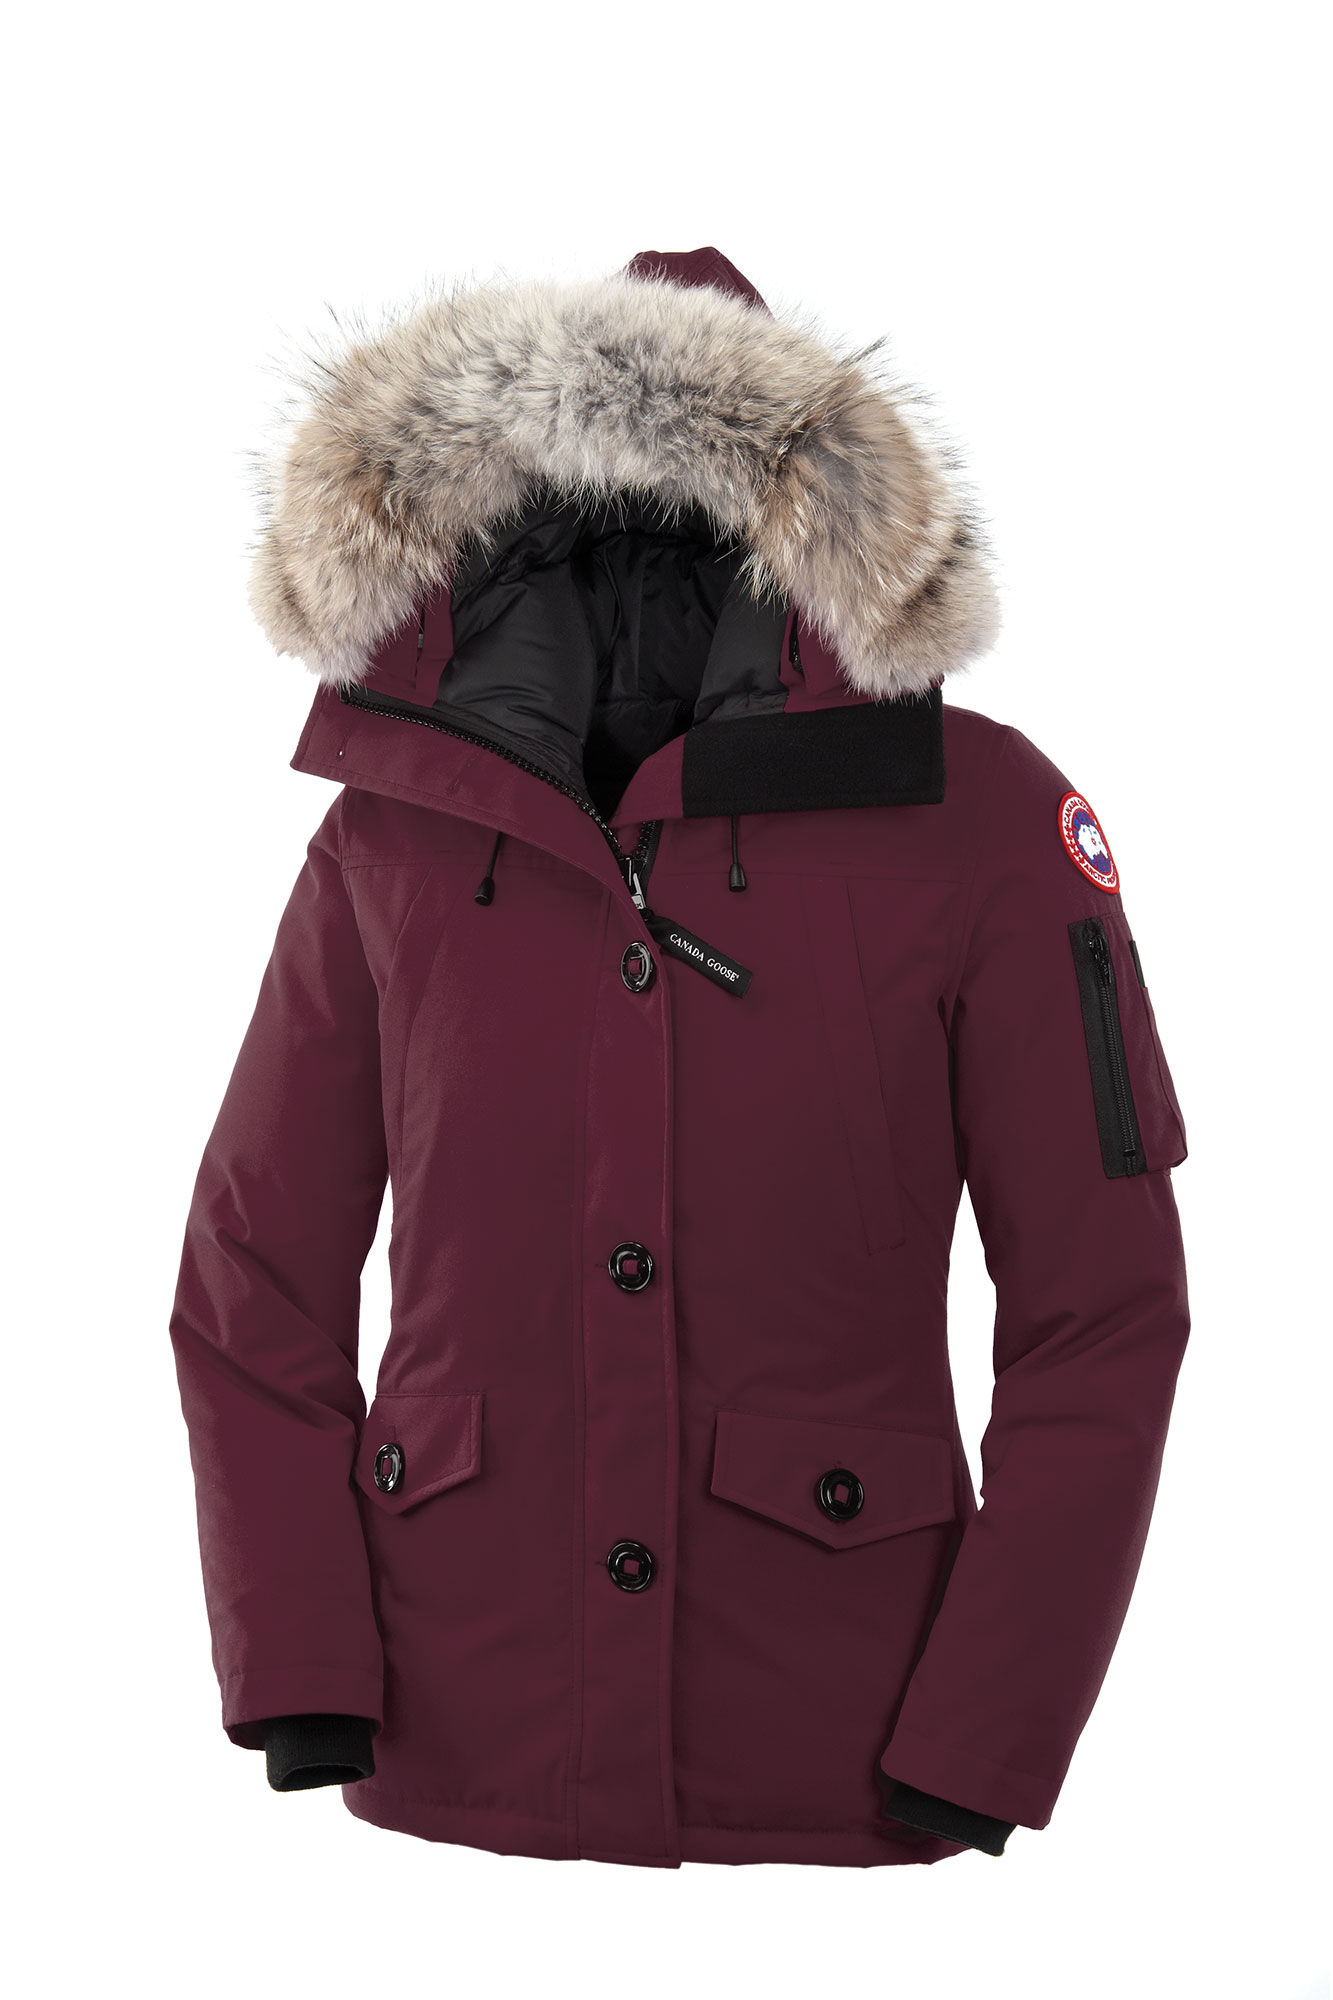 canada goose jacket knock off